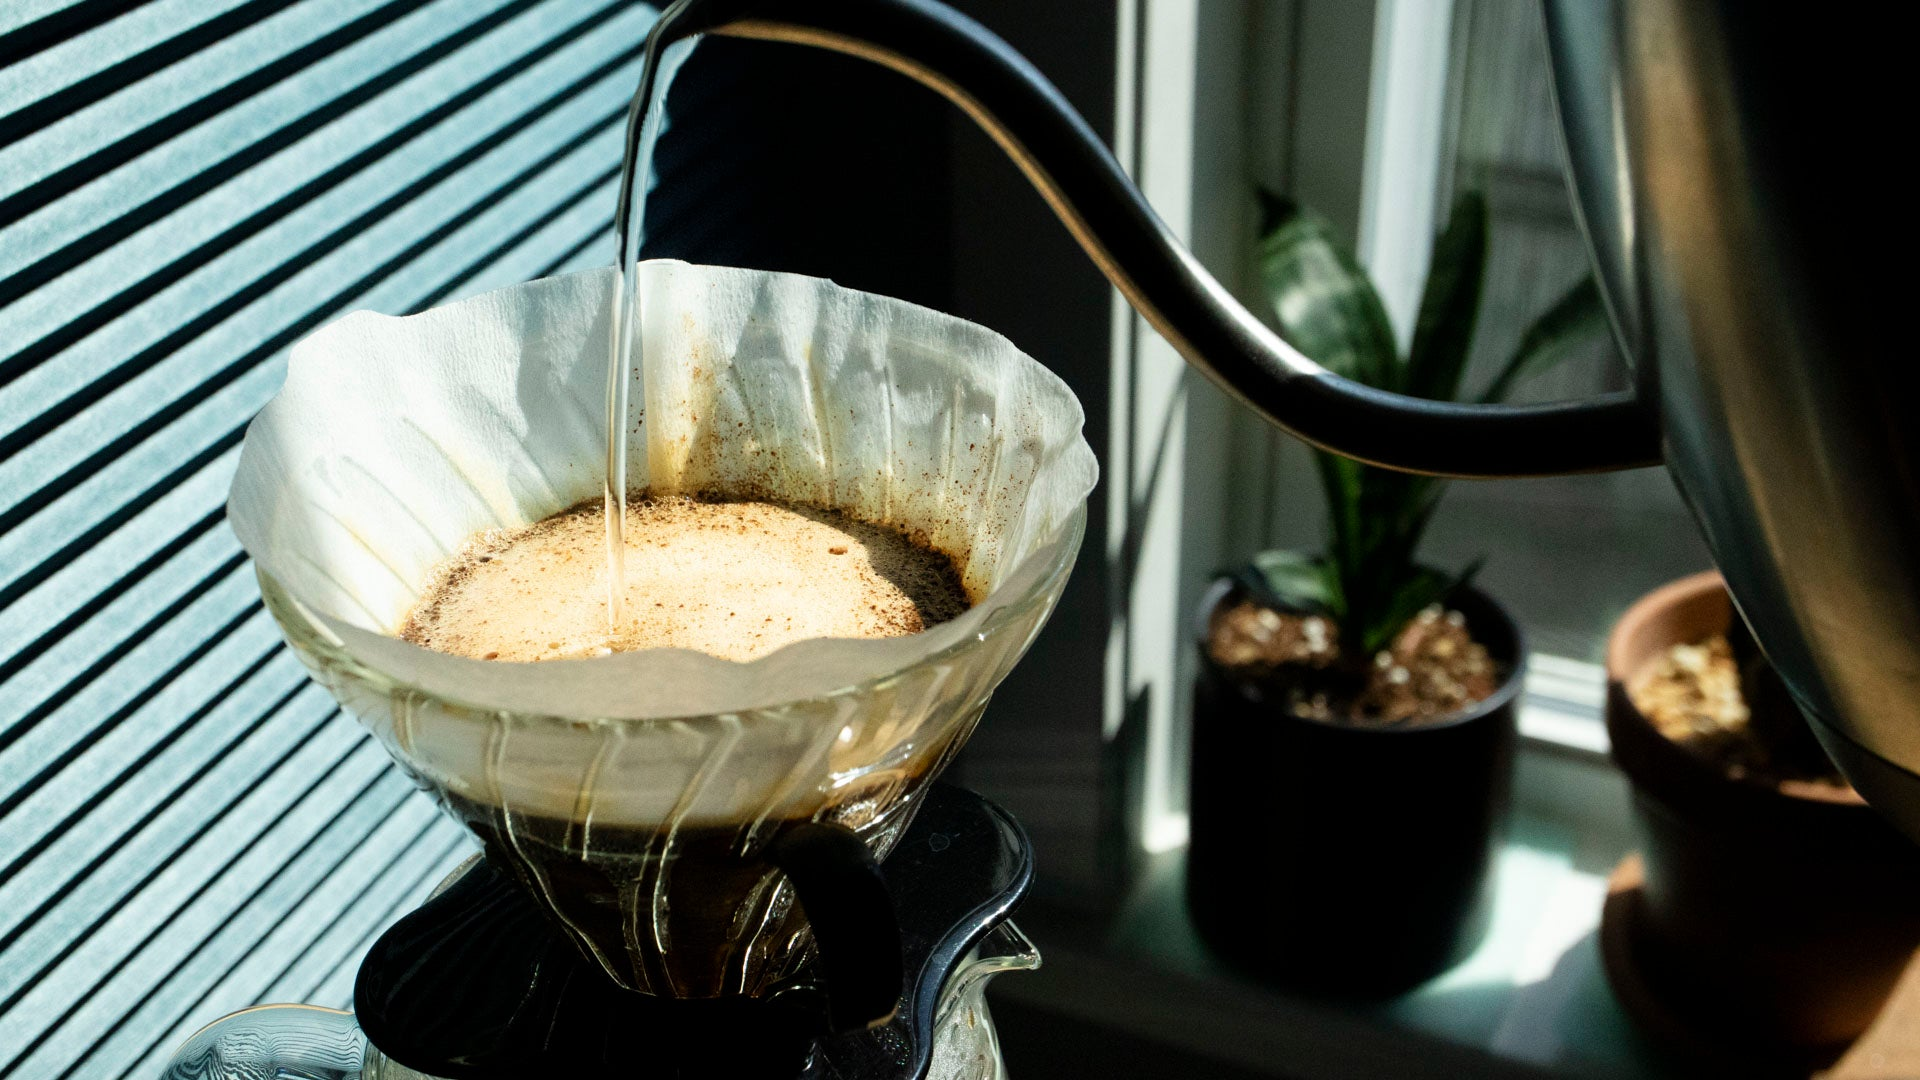 BKG Brew Guide: Pour over recipe for single origin Ethiopian coffee